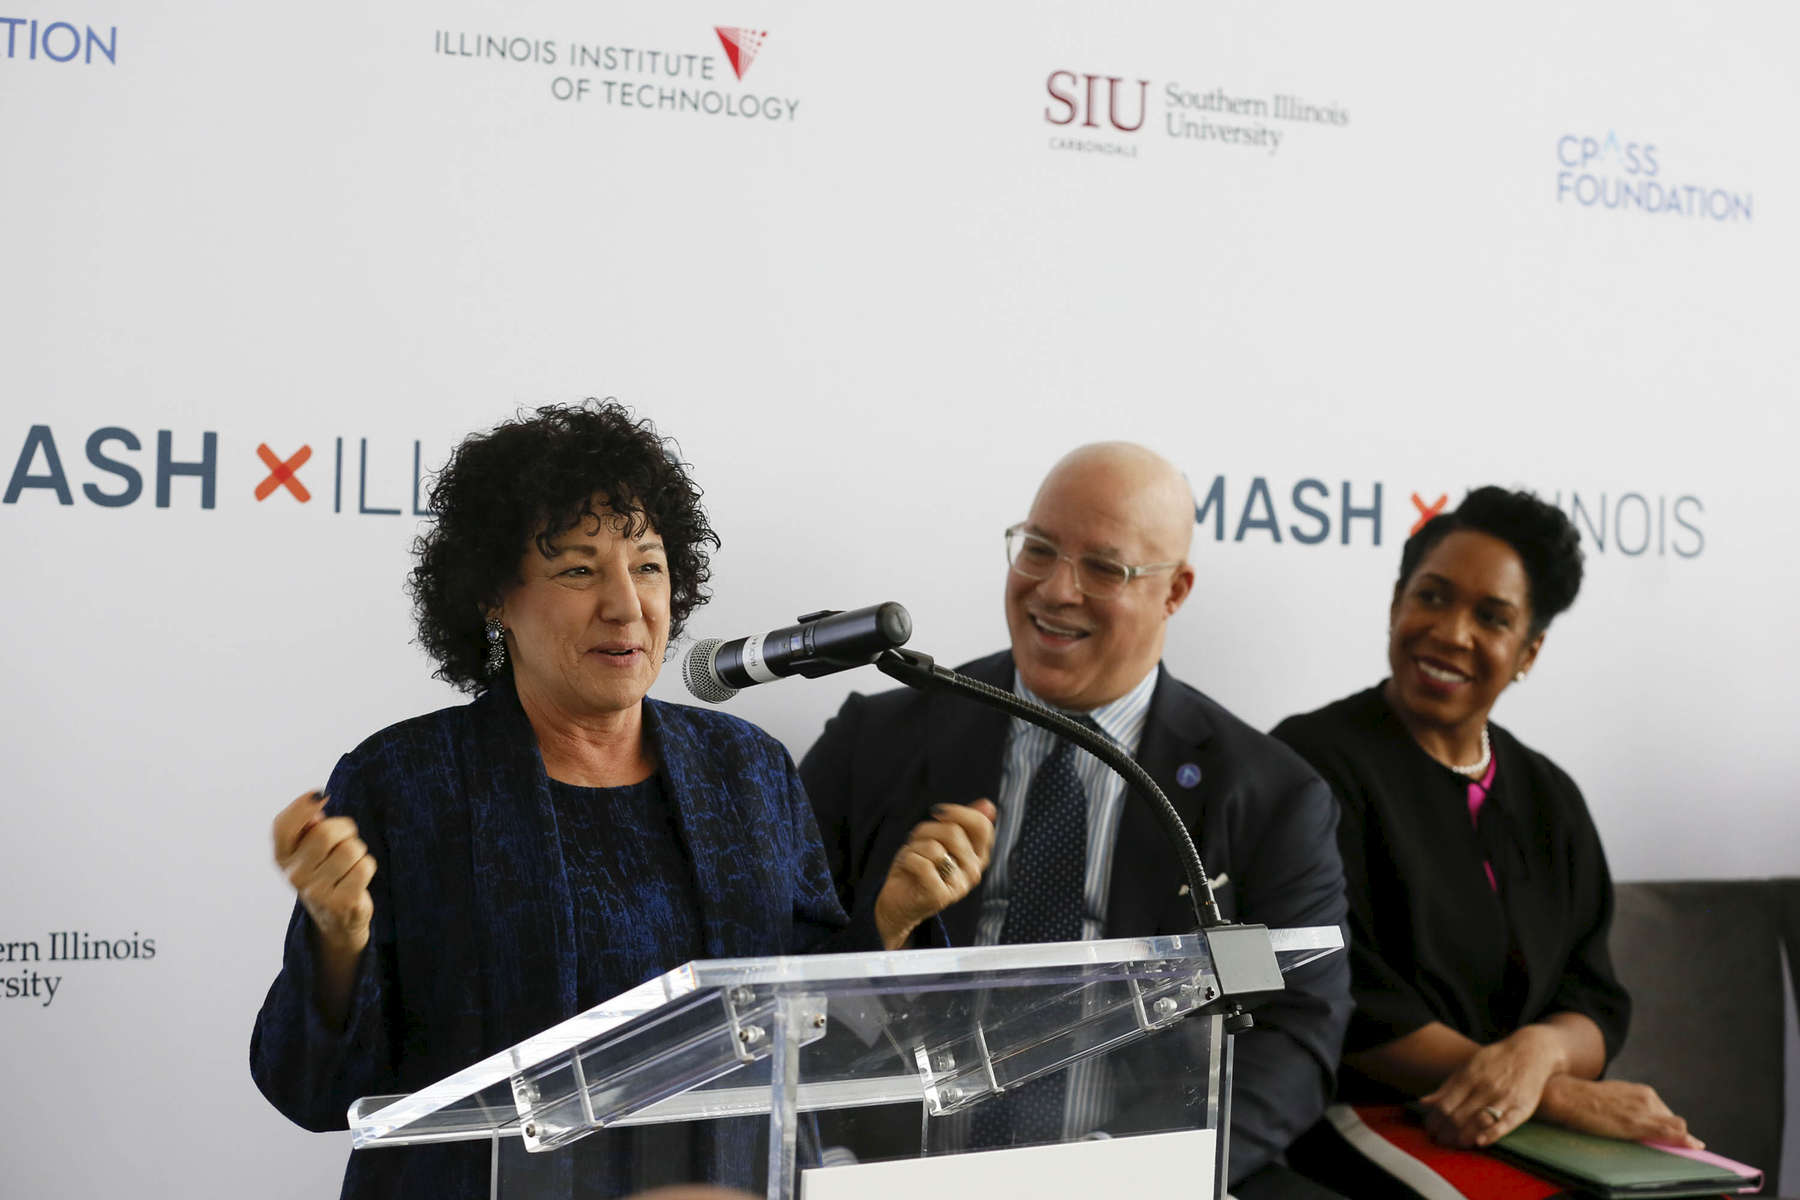 Dr. Freada Kapor Klein, Founder of SMASH, Partner at Kapor Capital, speaks at the SMASH Illinois launch in Chicago, Illinois on January 24, 2019.